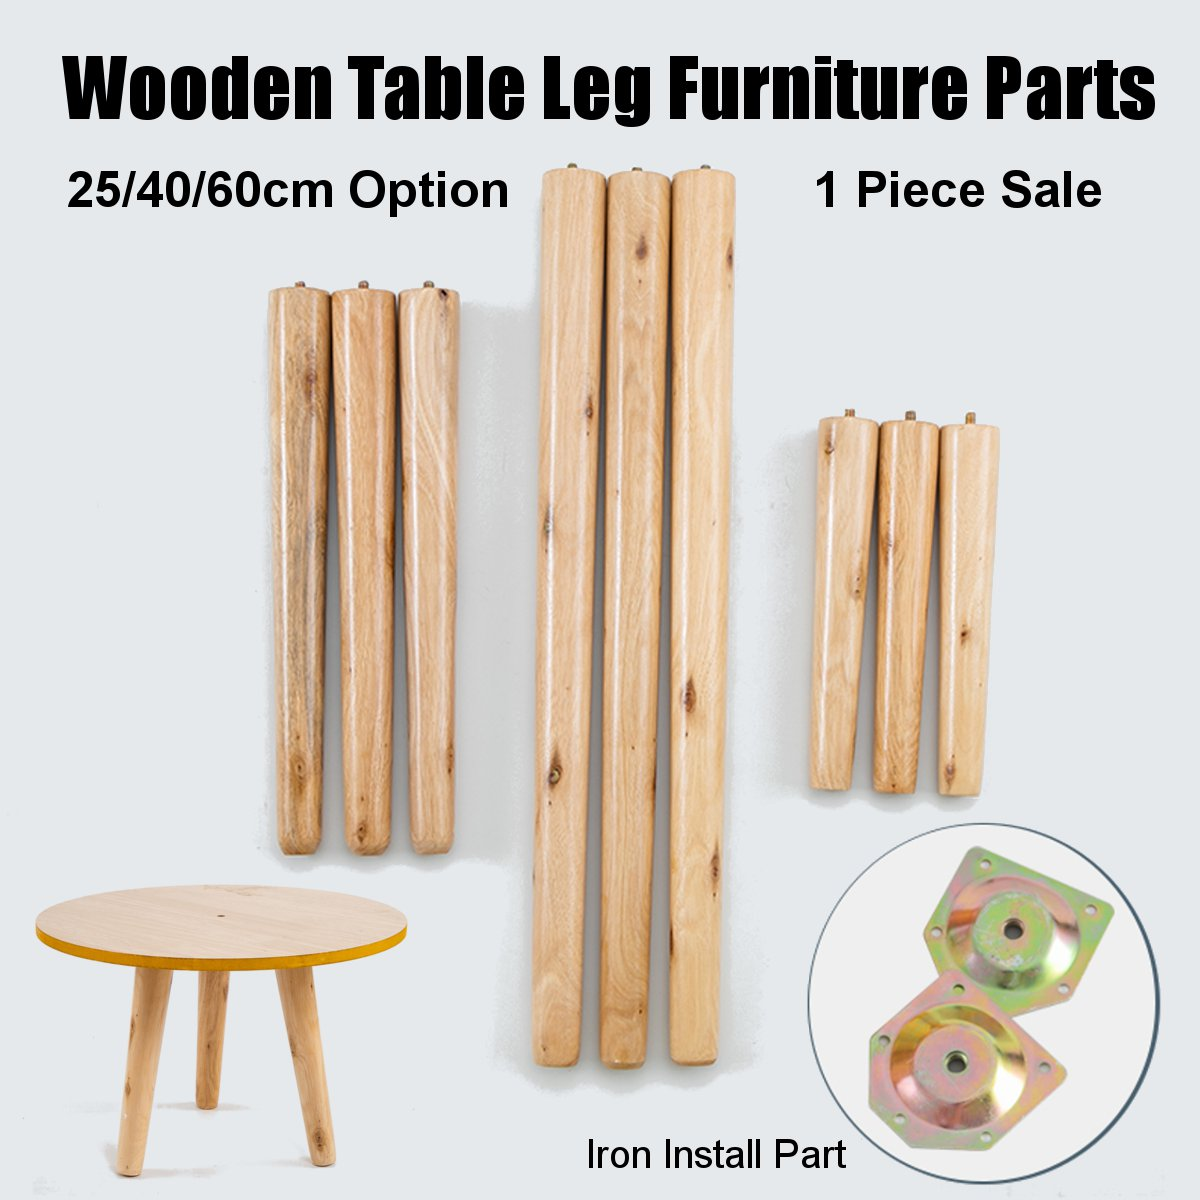 1PC 25/40/60cm Wooden Table Leg Tapered Chair Stool Sofa Home Furniture Parts Cabinet Furniture Hardware Screw Mounting Kits Set